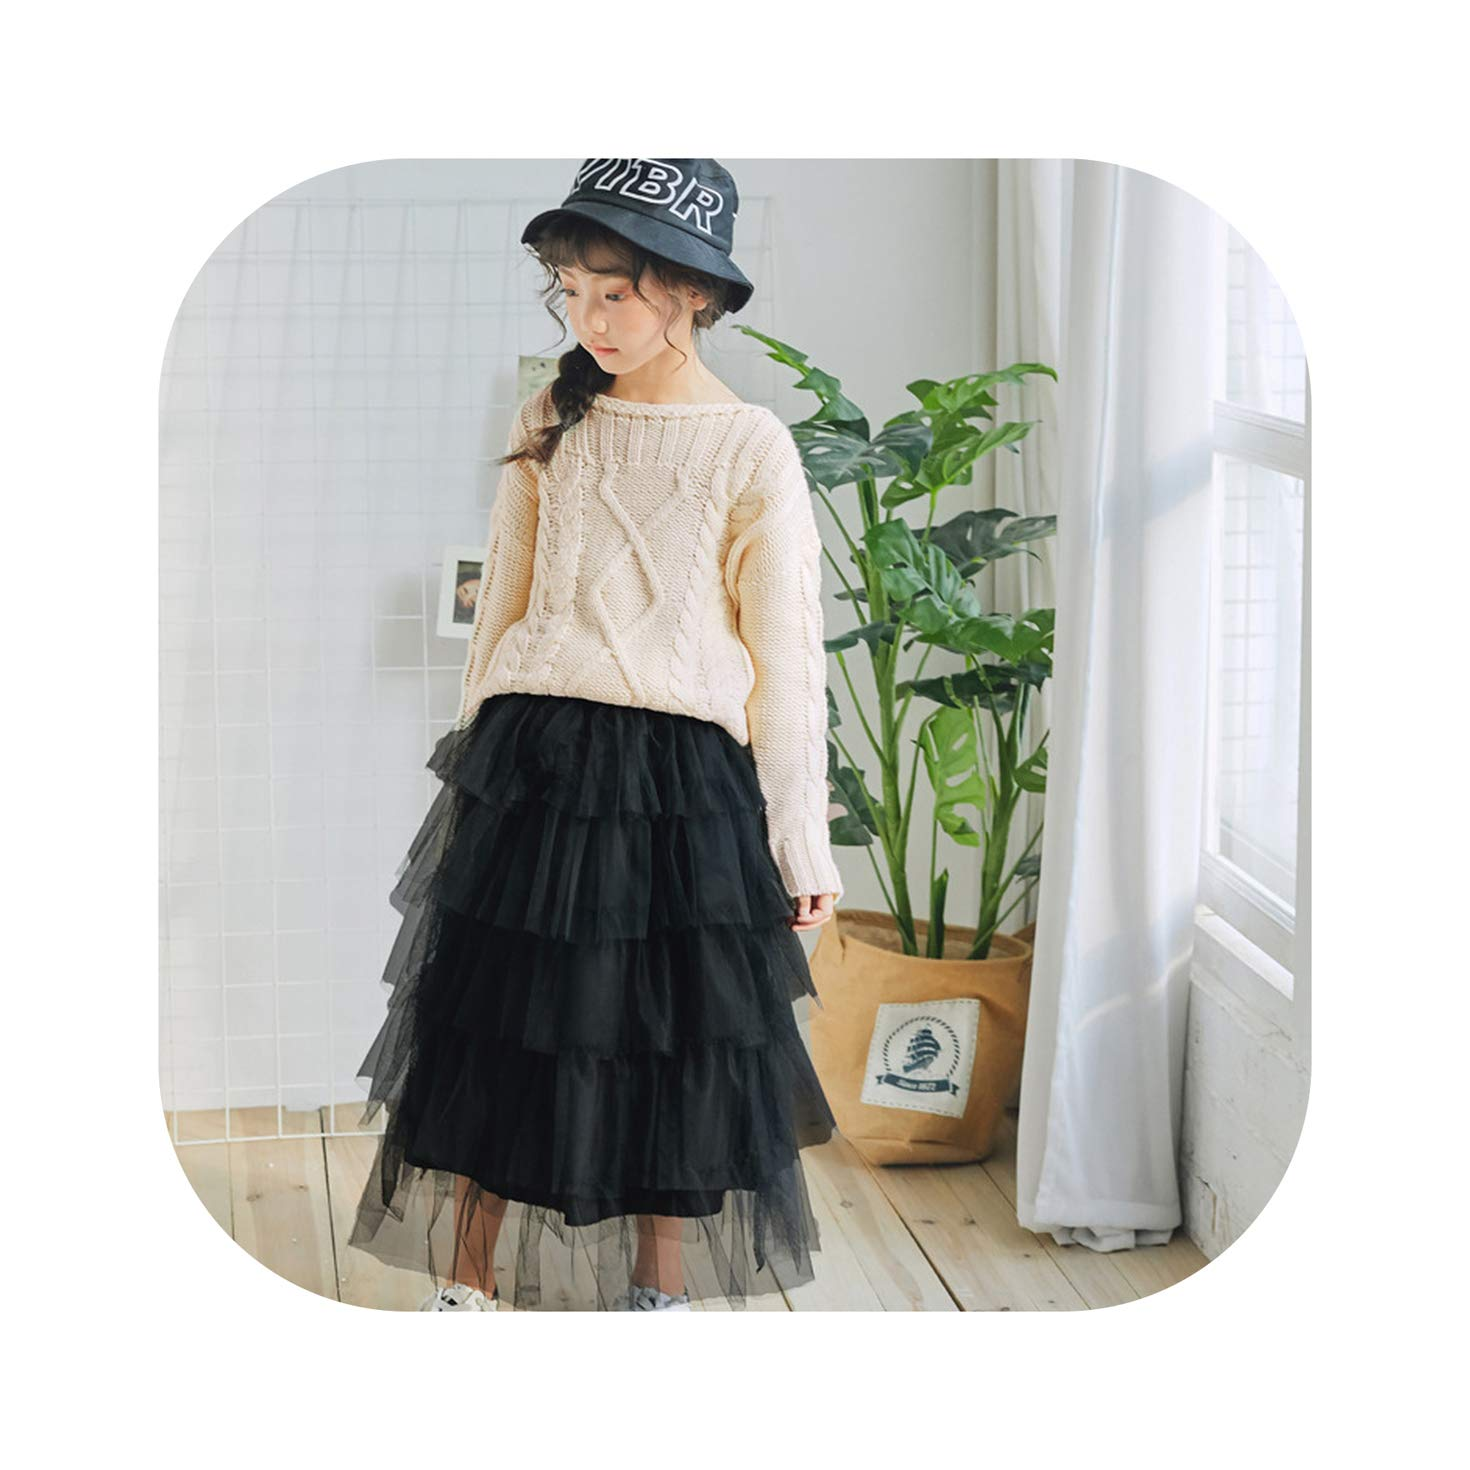 Girls Long Skirt Baby Tulle Ball Gown Kids Beautiful Skirts Fashion Child Party Casual Long Skirts in Spring Autumn Size 2-13T,Long Skirt White,8